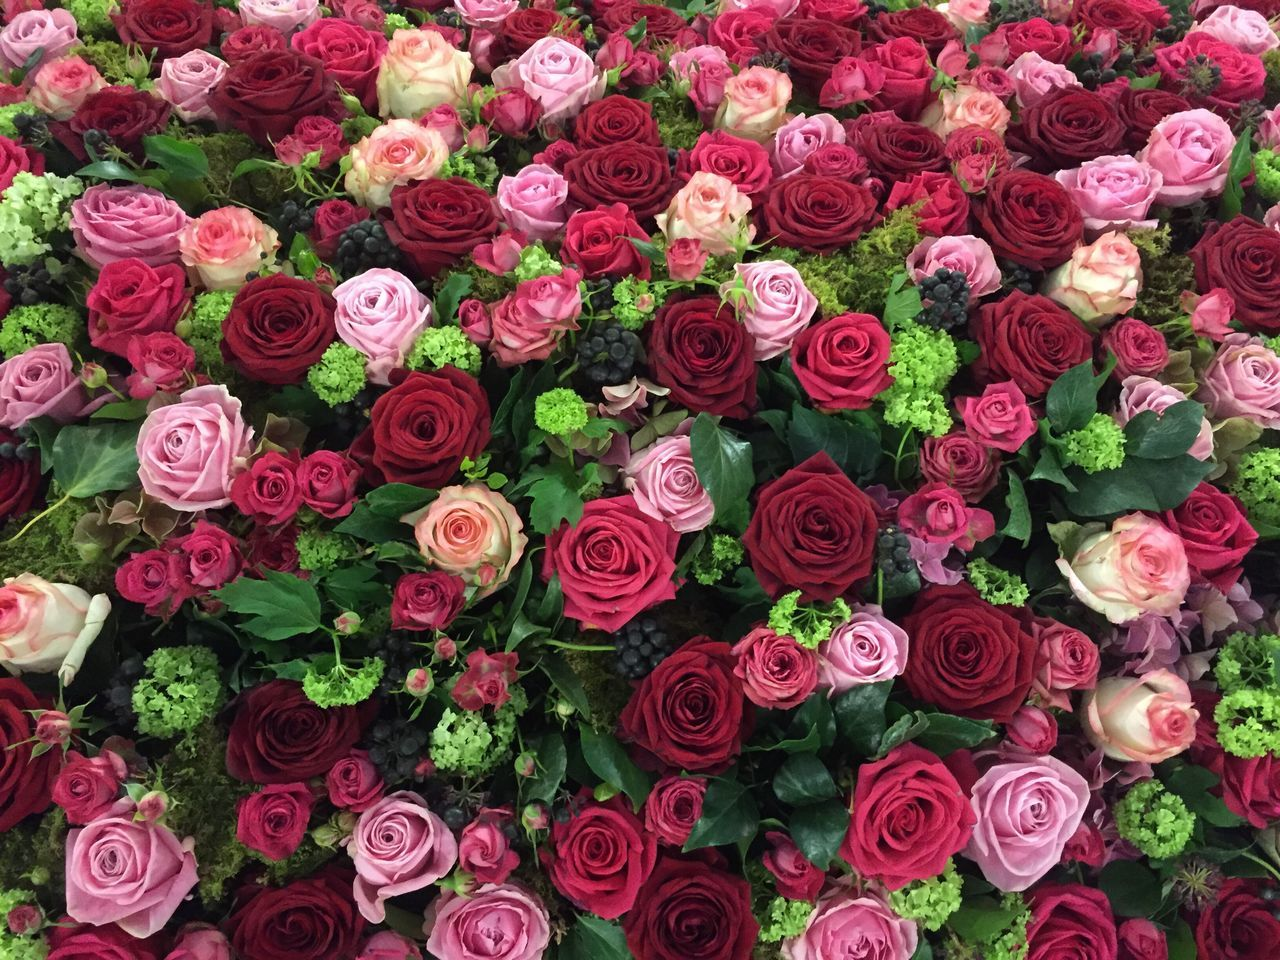 Rose flower background Flower Fragility Abundance Freshness Full Frame Beauty In Nature Petal Nature Backgrounds Rose - Flower Red Flower Head Large Group Of Objects Pink Color No People Outdoors Close-up Flower Market Bouquet Day Mothers Day Valentine's Day  Blossom Flower Arrangement Red